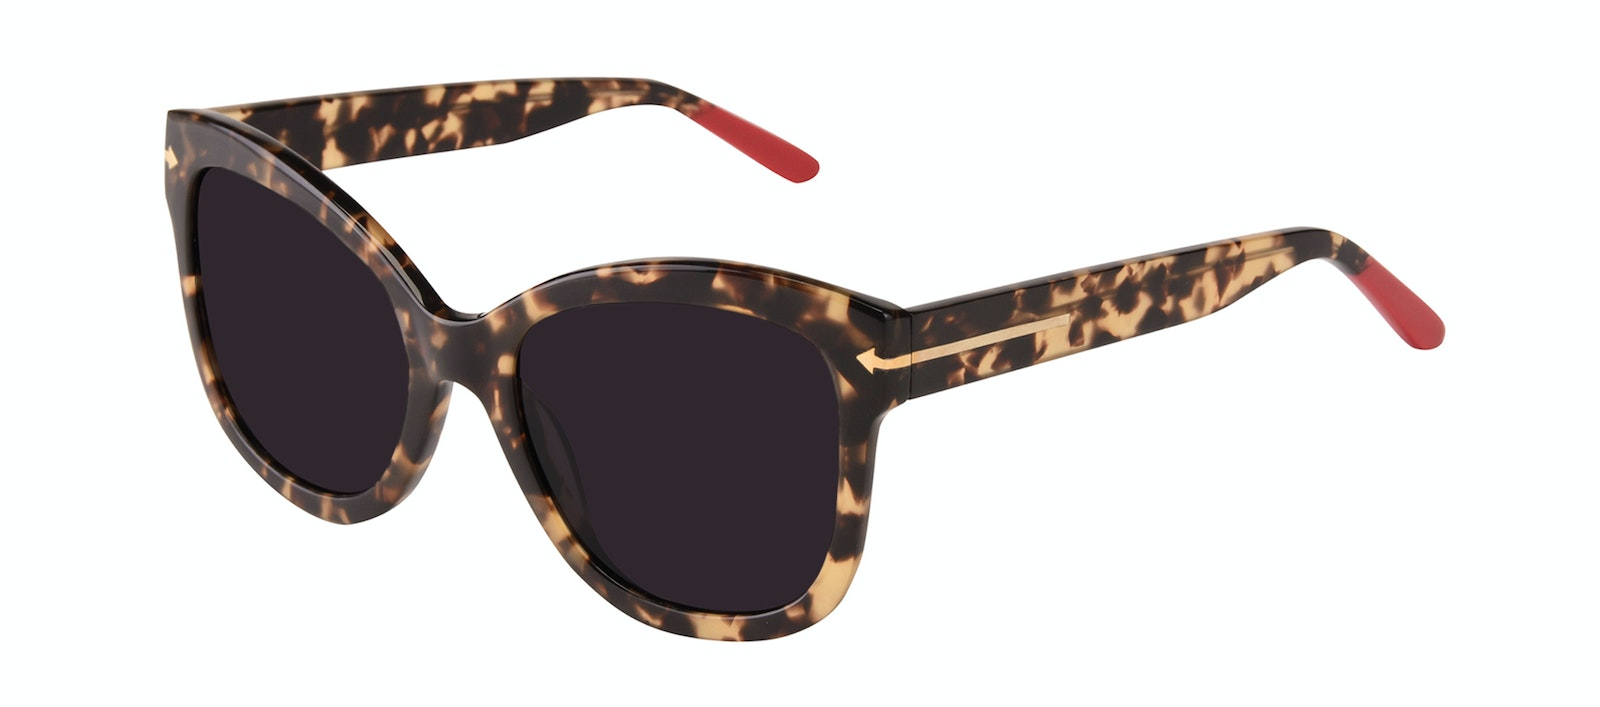 Affordable Fashion Glasses Square Sunglasses Women Marlo Espresso Tilt